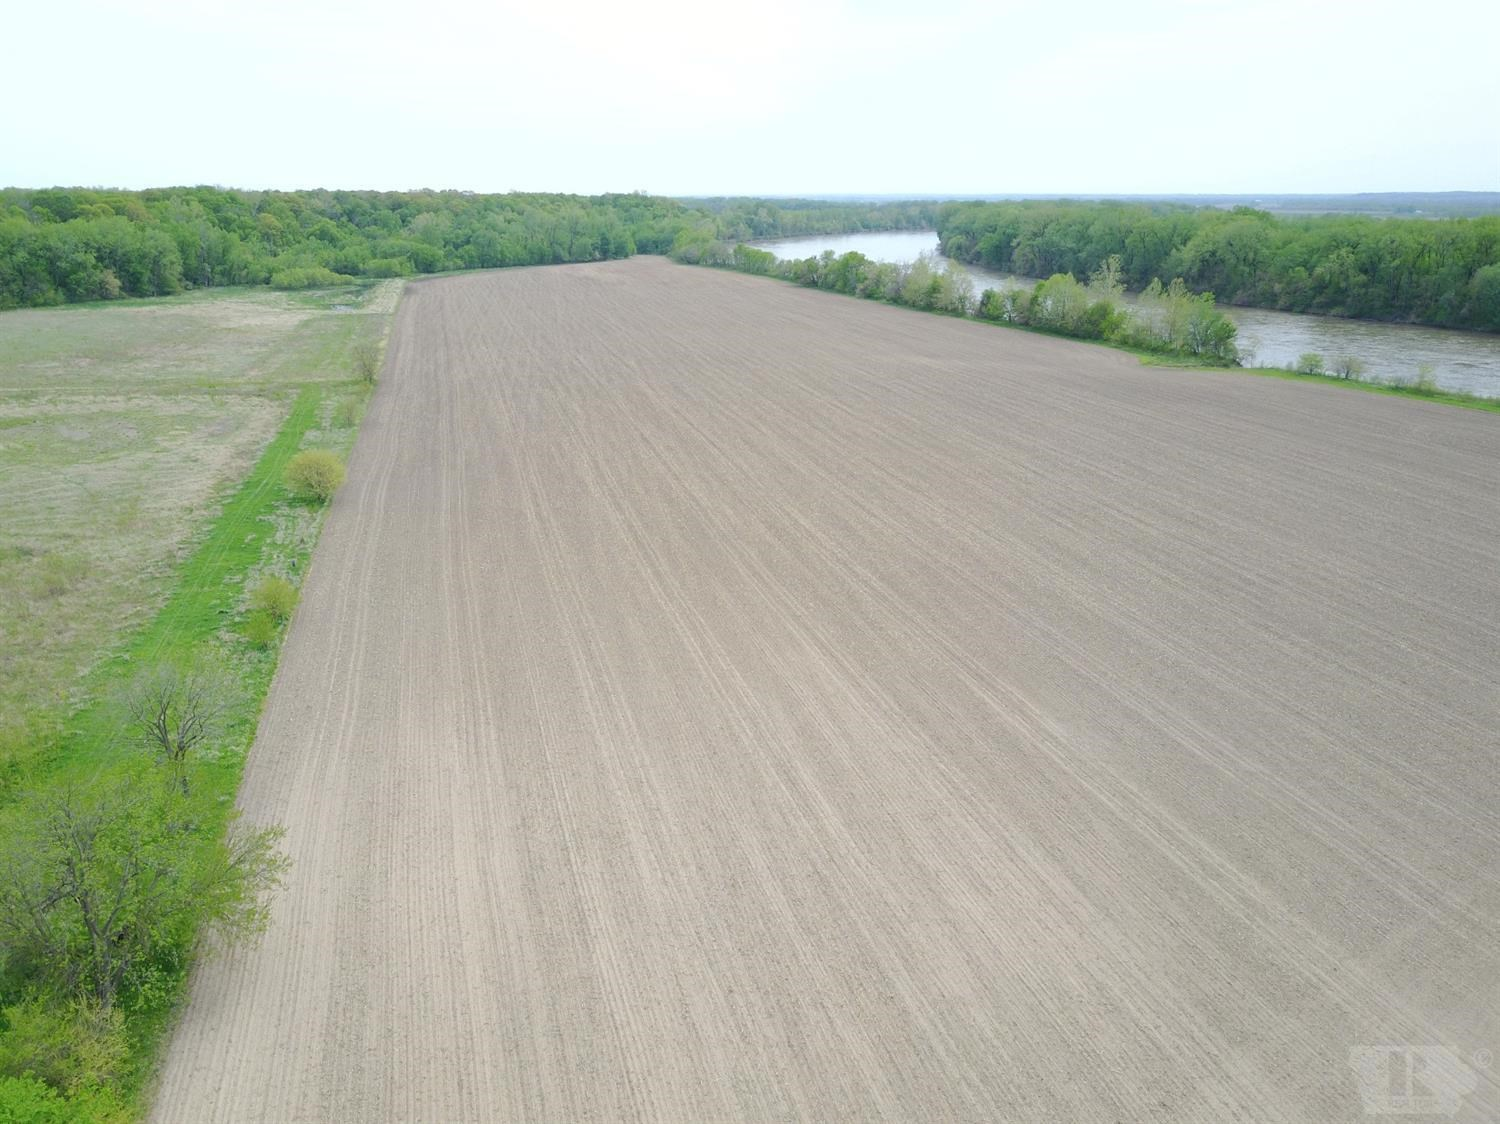 Farm Ground in Lee Co, IA